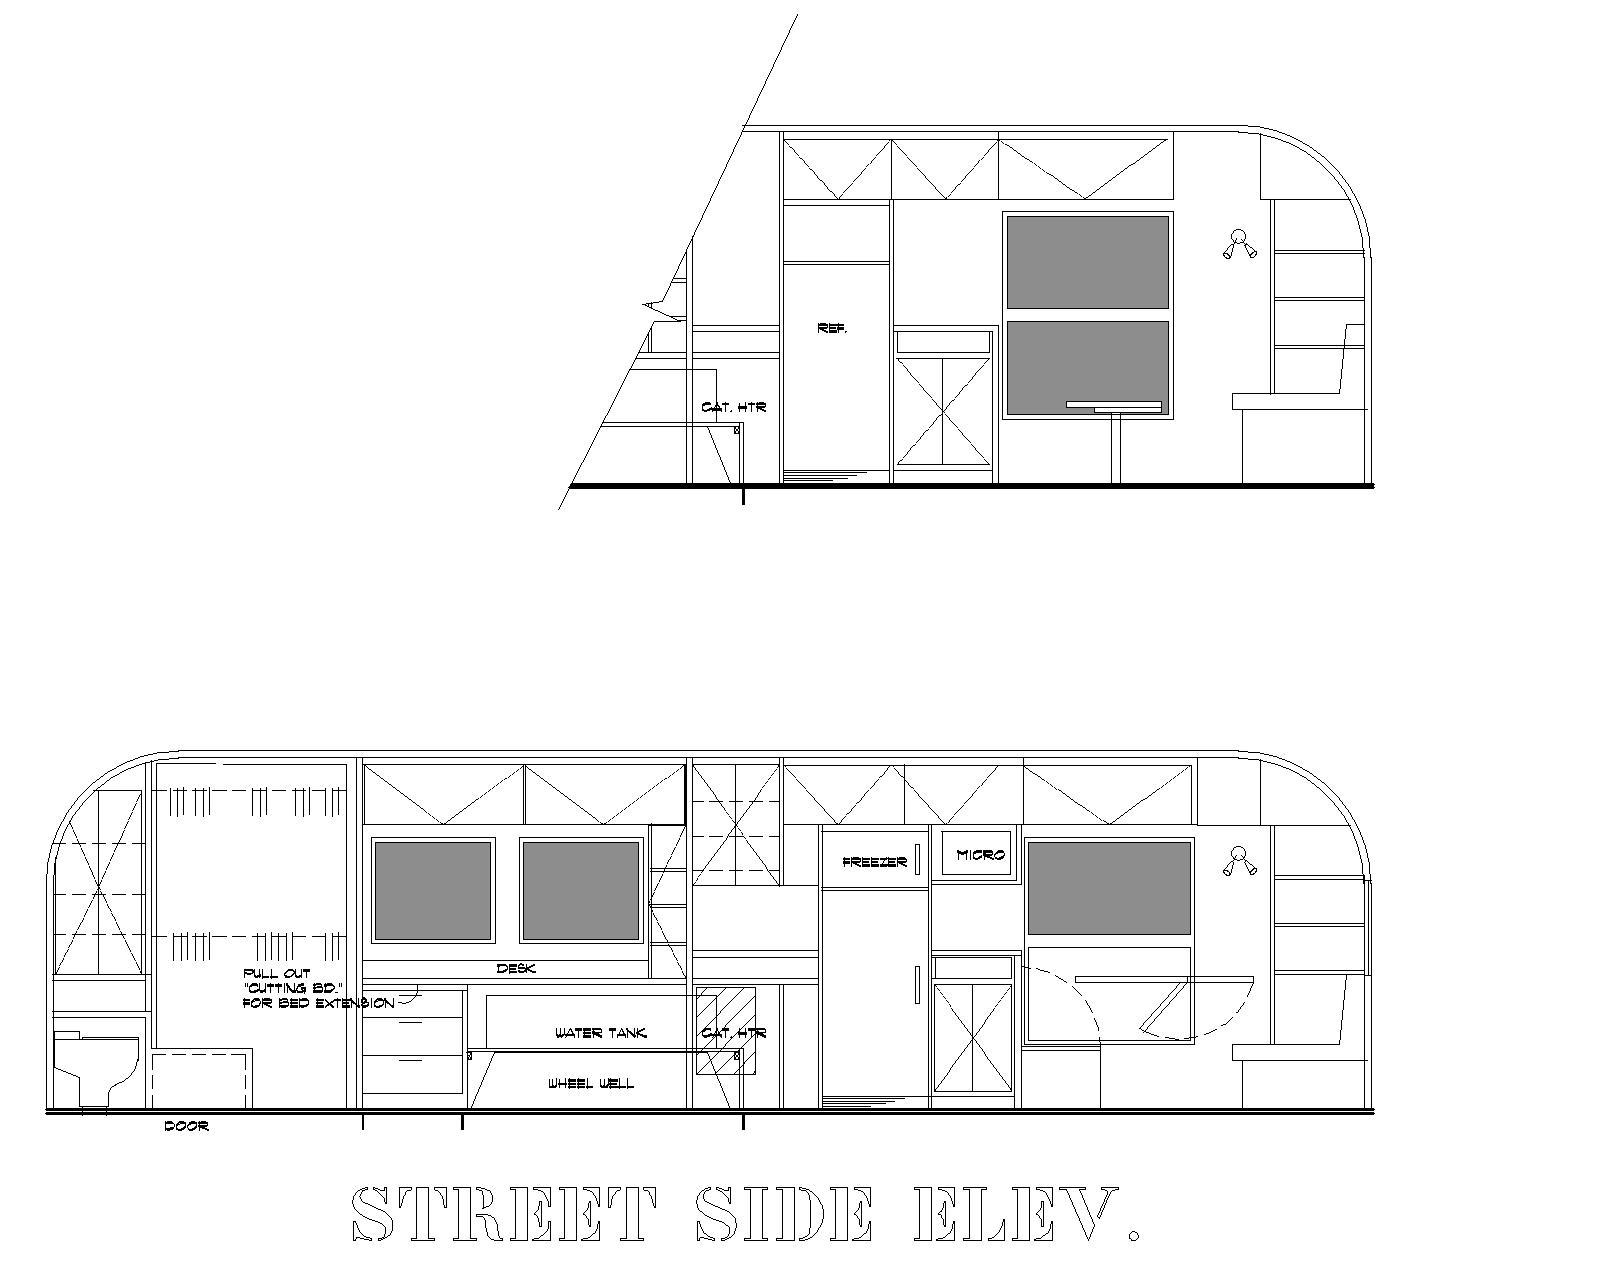 Click image for larger version  Name:Airstream-Street side.jpg Views:190 Size:147.7 KB ID:92803